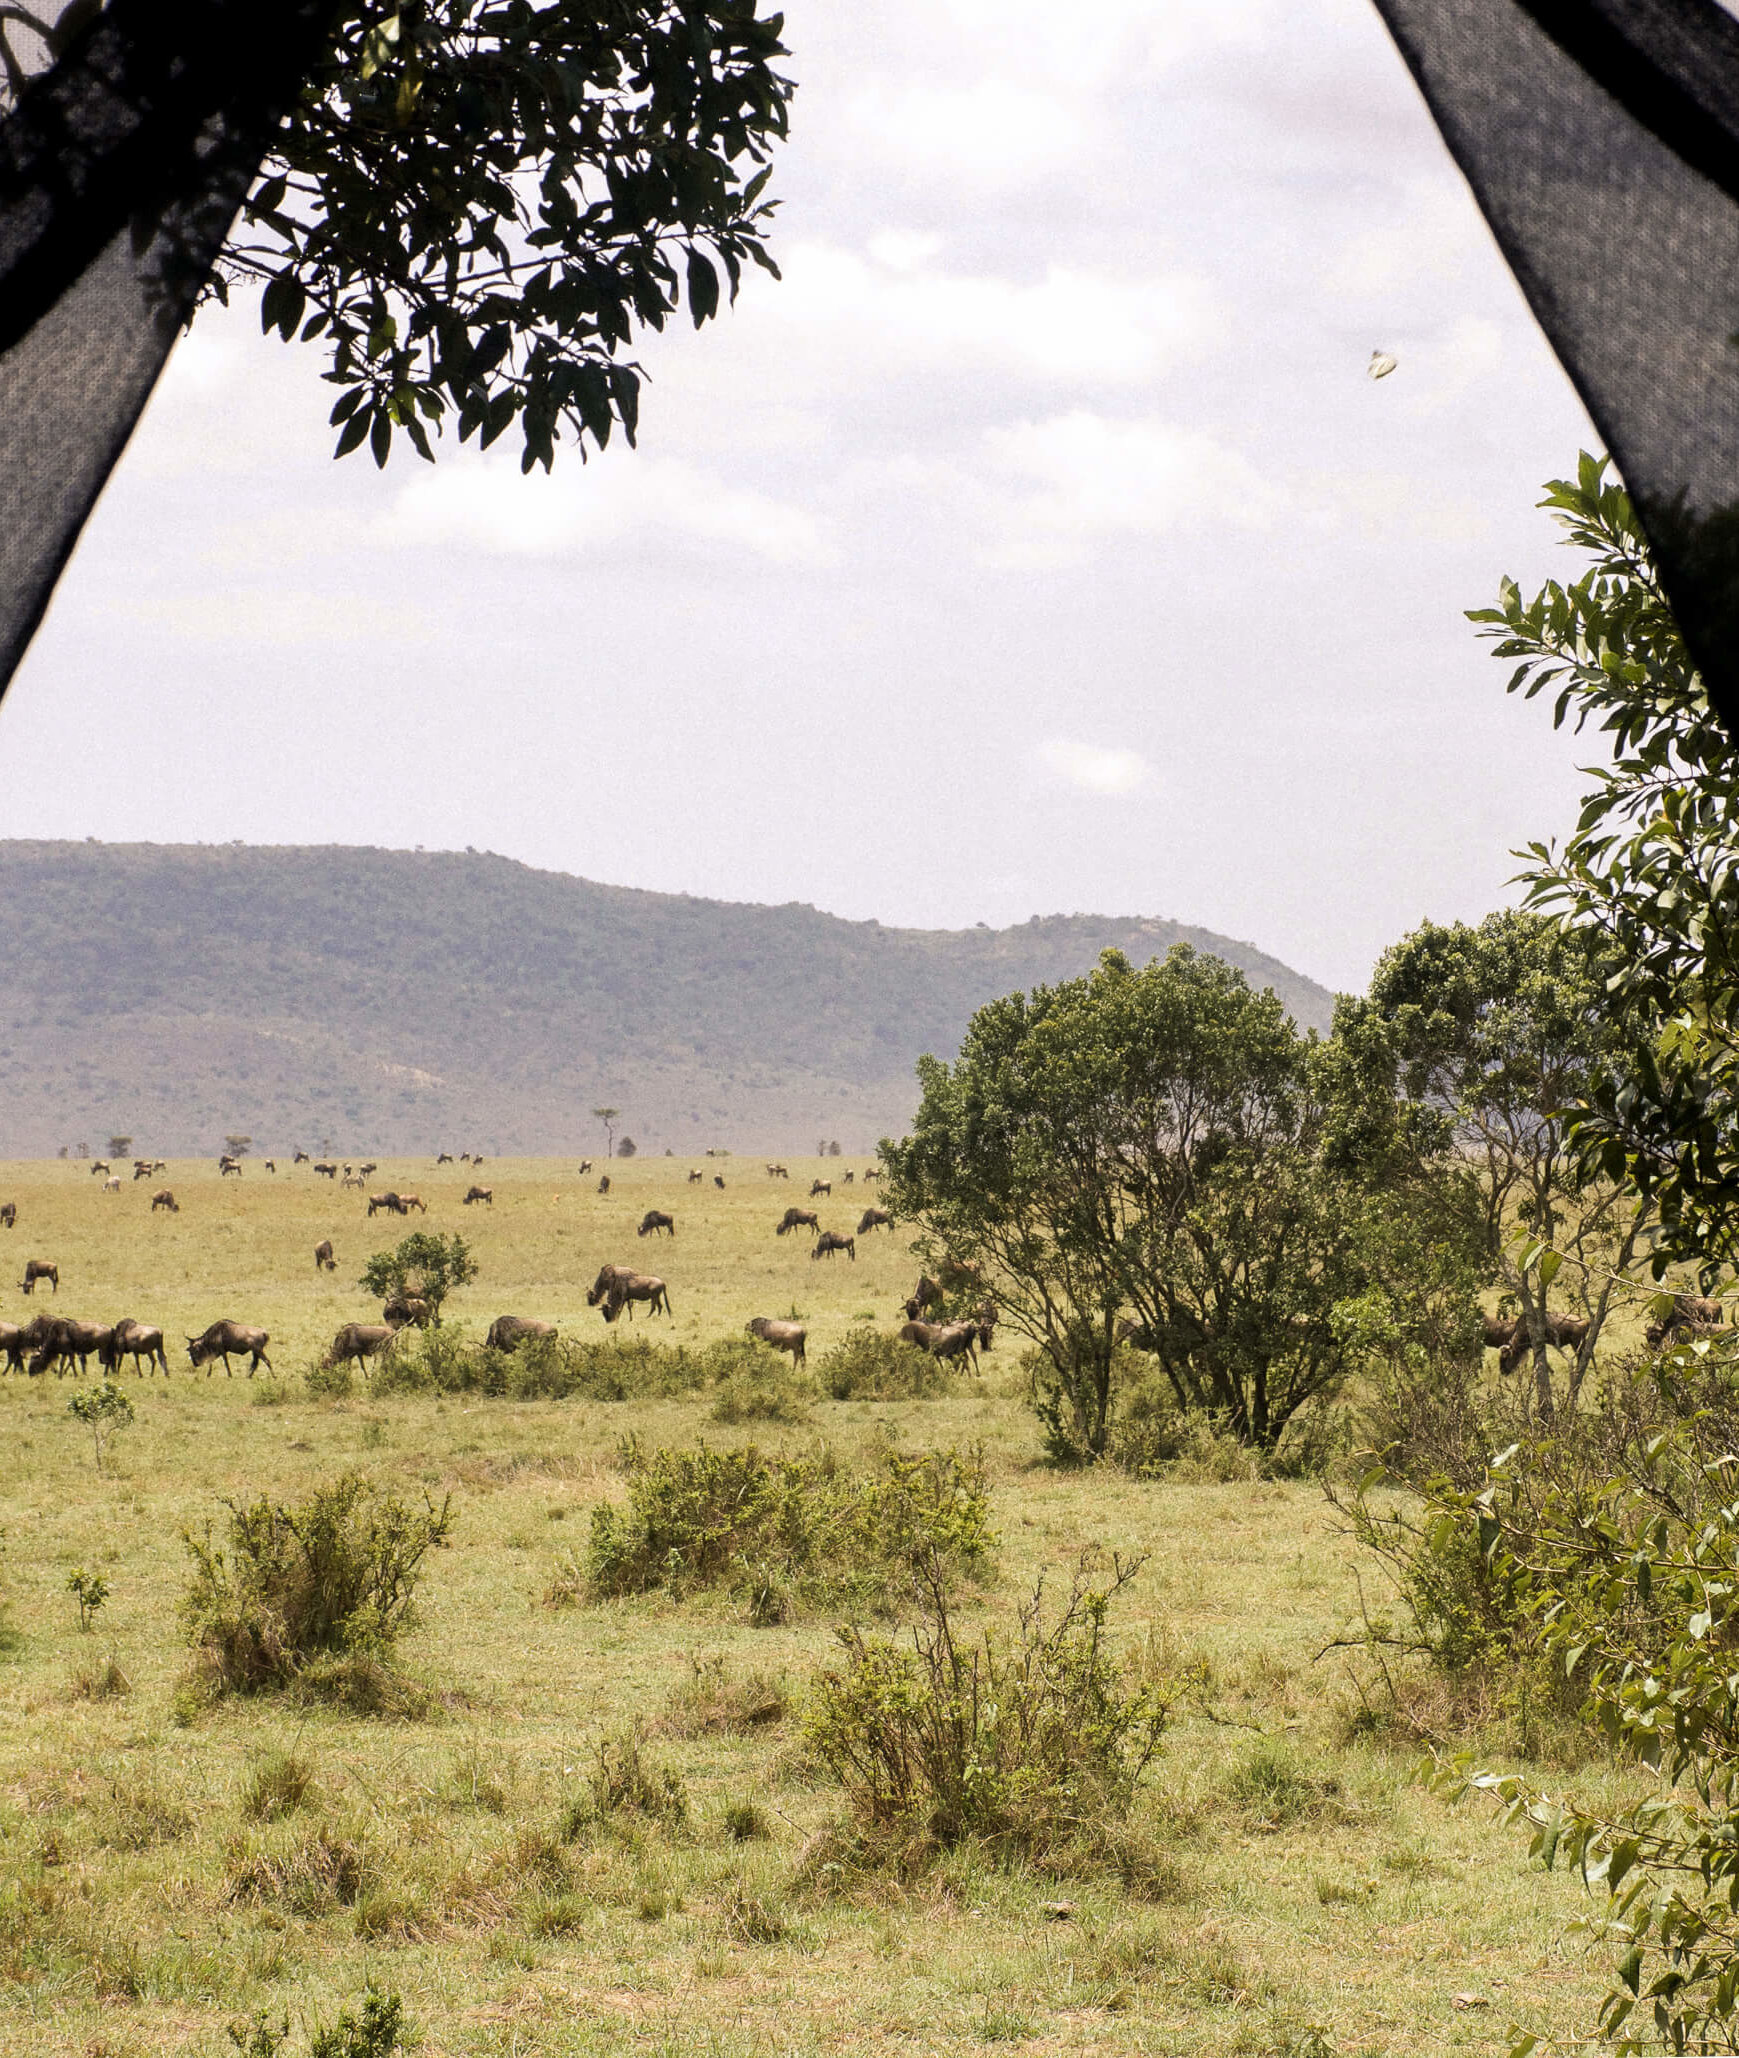 CHECKING IN @ LOSOKWAN LUXURY TENTED CAMP